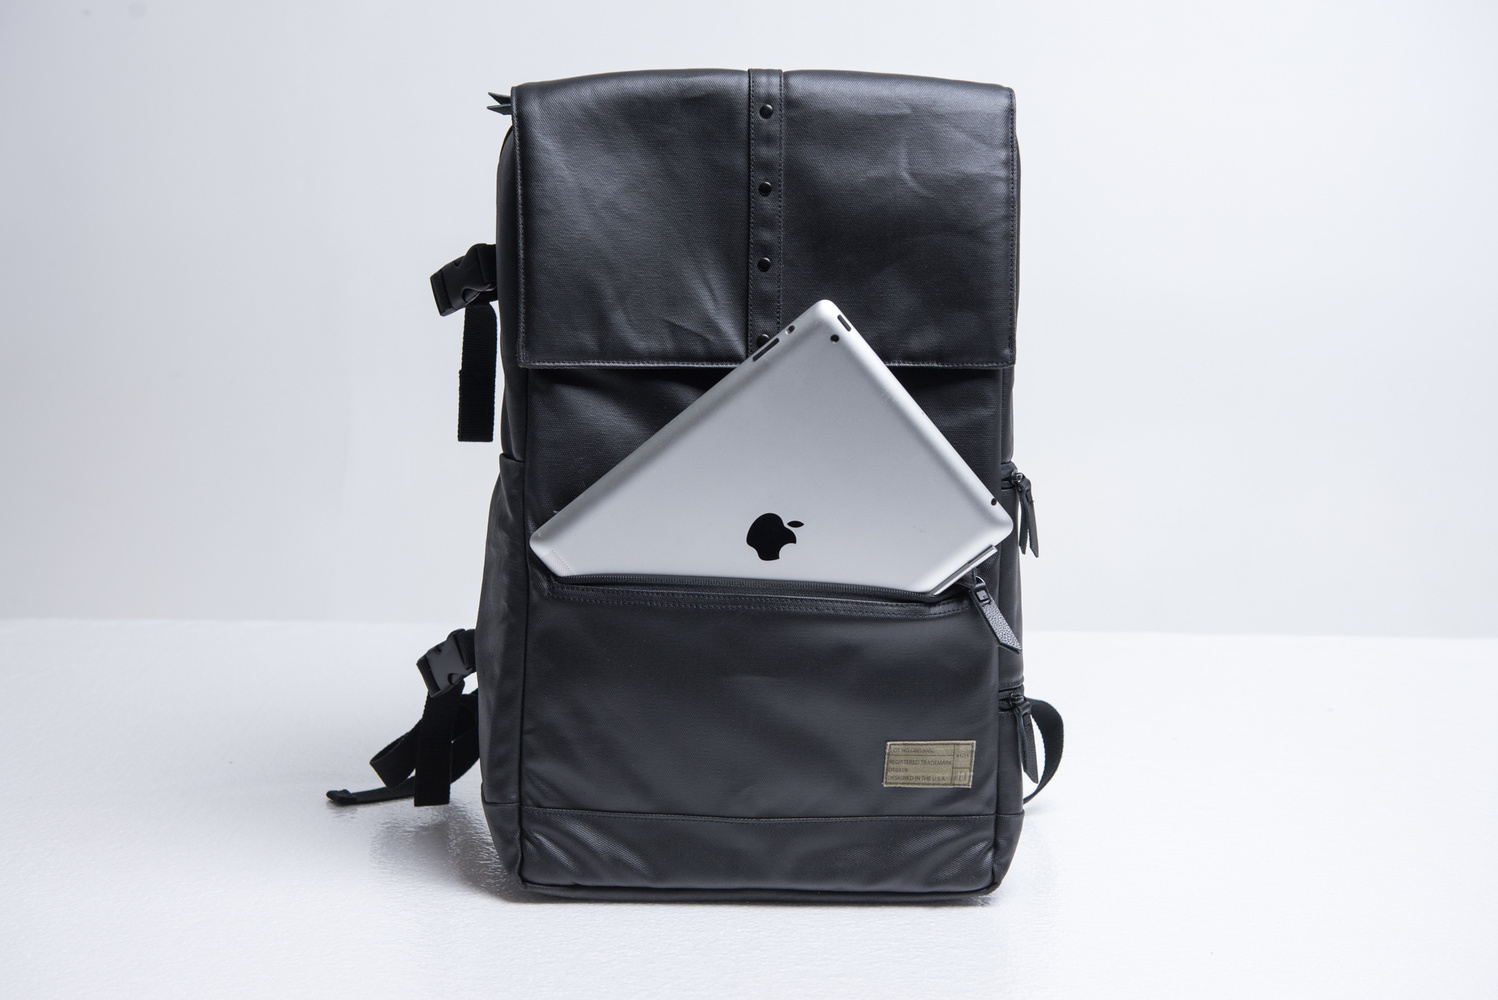 Camera Dslr Camera Bags Review fstoppers reviews hex dslr sling and backpack camera bags there are two more side pockets the larger is lined with microfiber would fit nd filters or lens caps smaller great